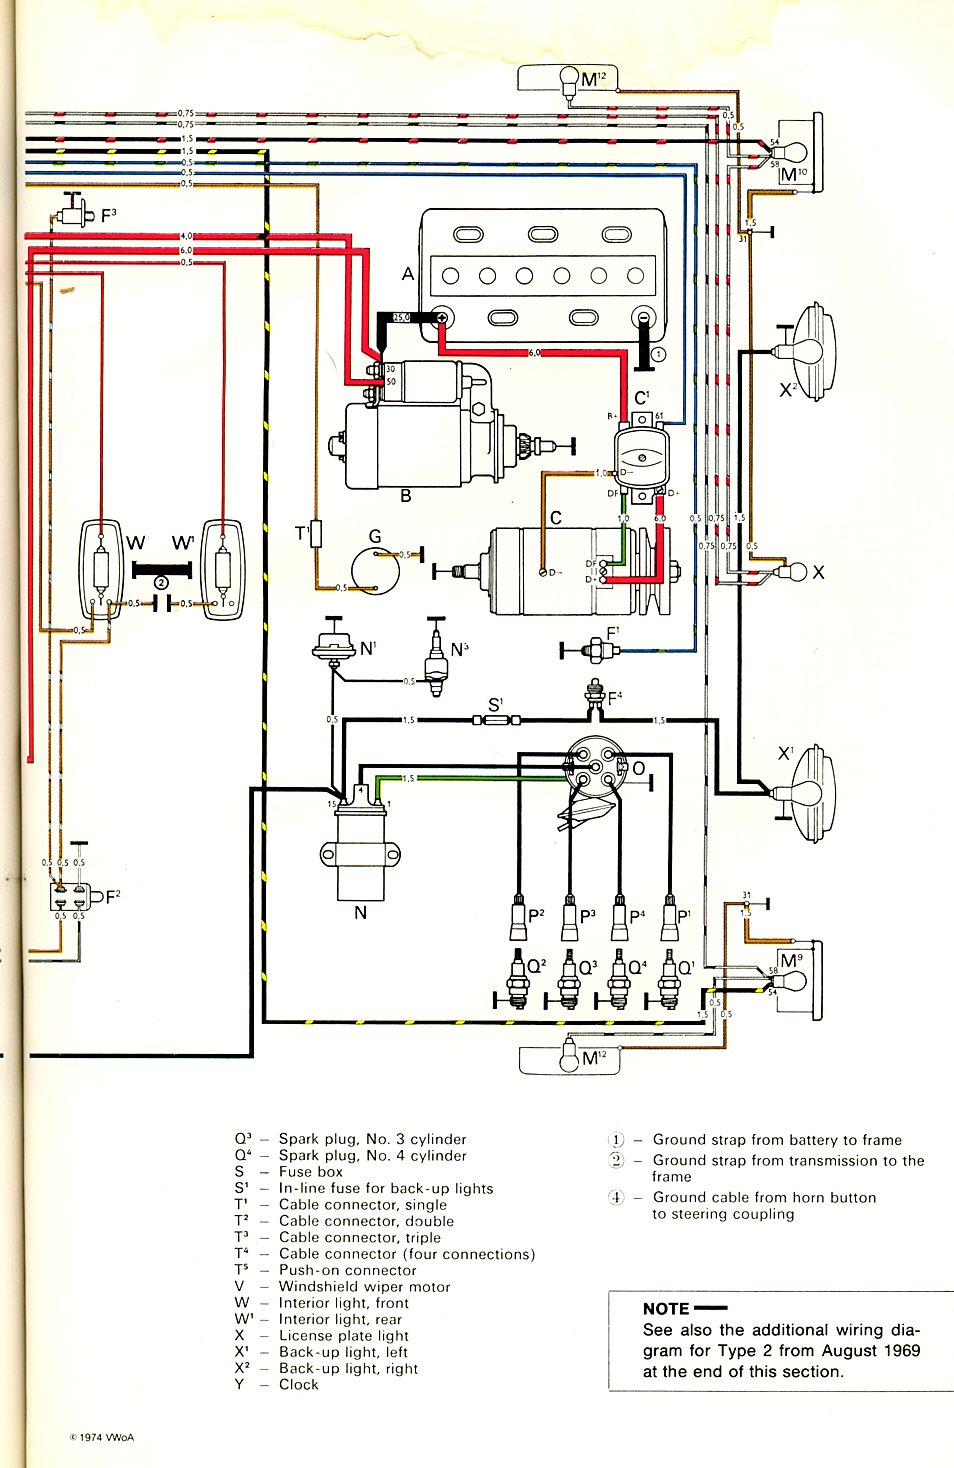 baybus_70b thesamba com type 2 wiring diagrams vw wiring diagrams at pacquiaovsvargaslive.co